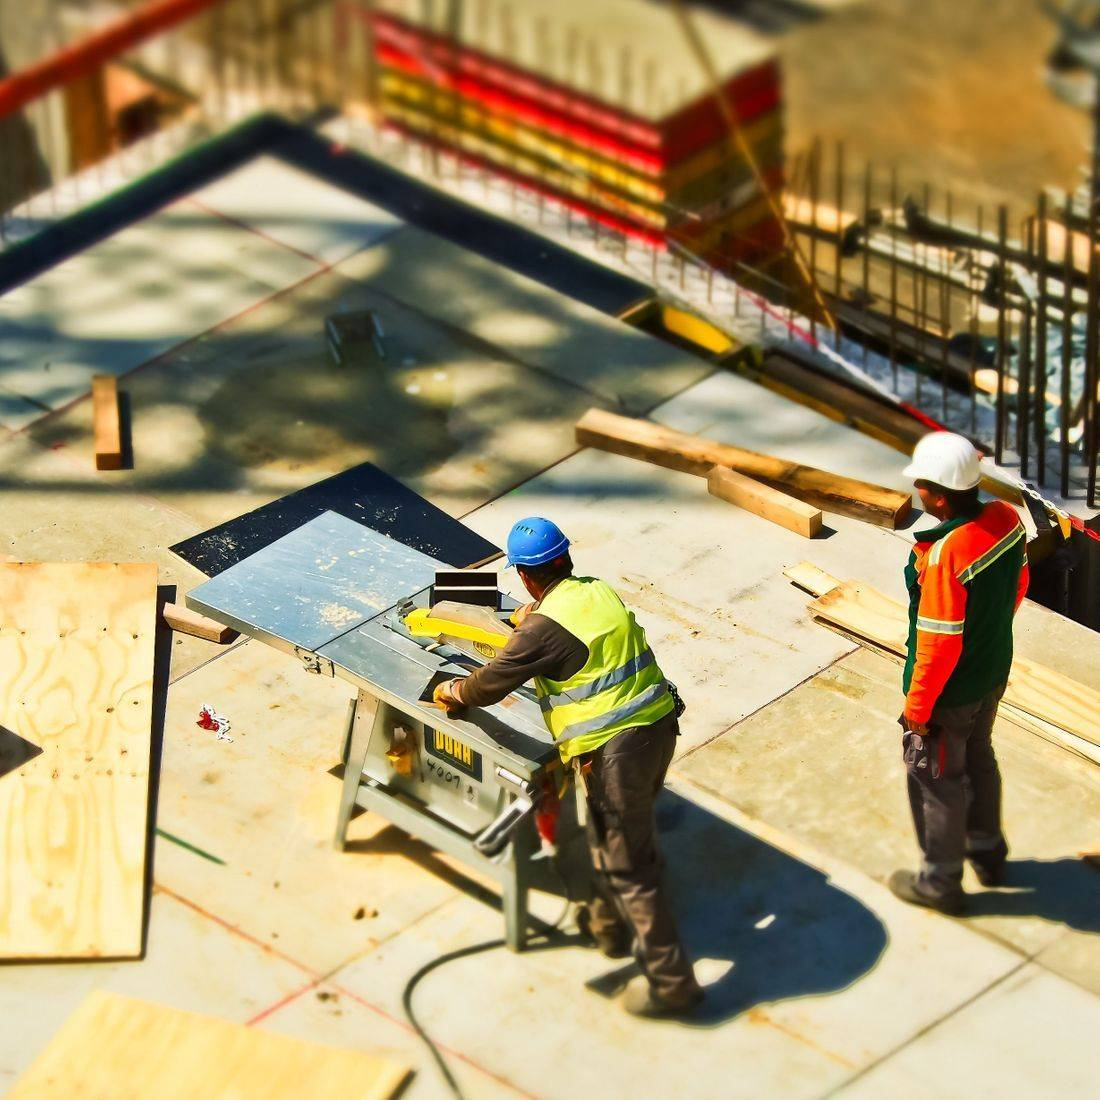 Builders working on a construction site